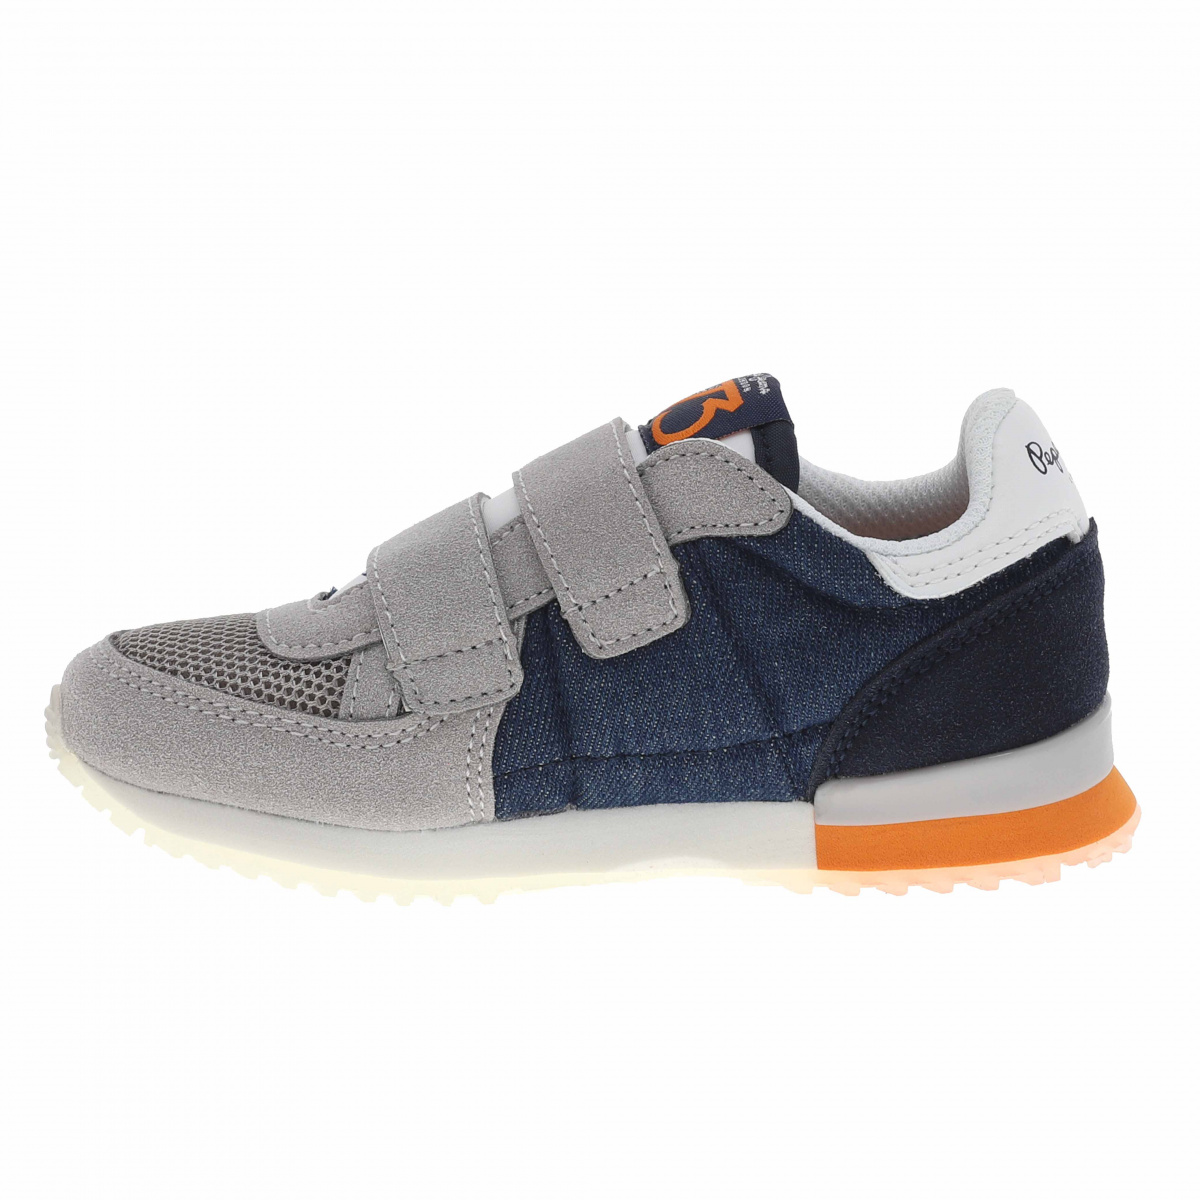 Baskets basses fille SYDBEY PEPE JEANS